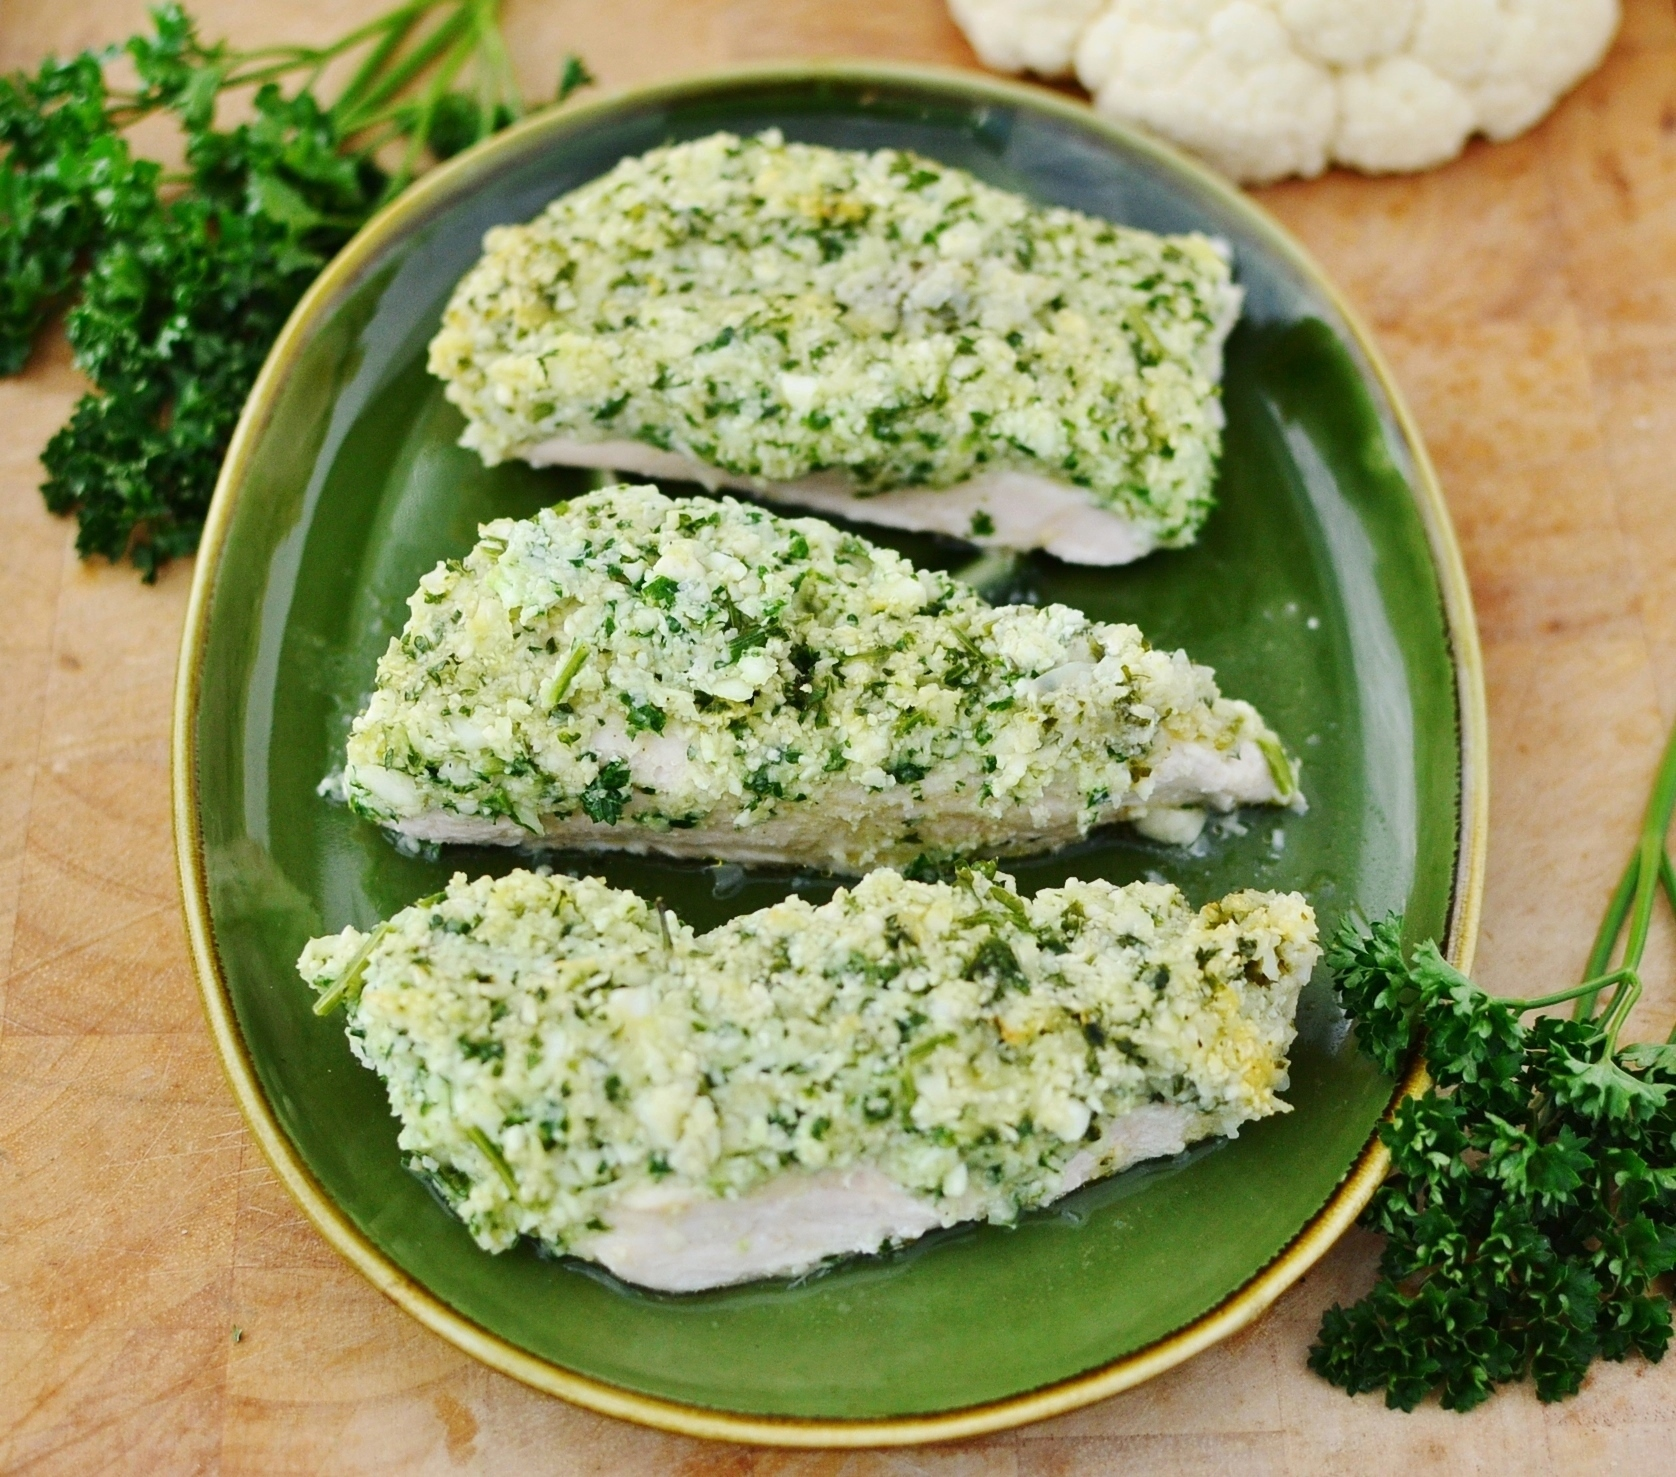 Chicken with cauliflower, parsley and parmesan